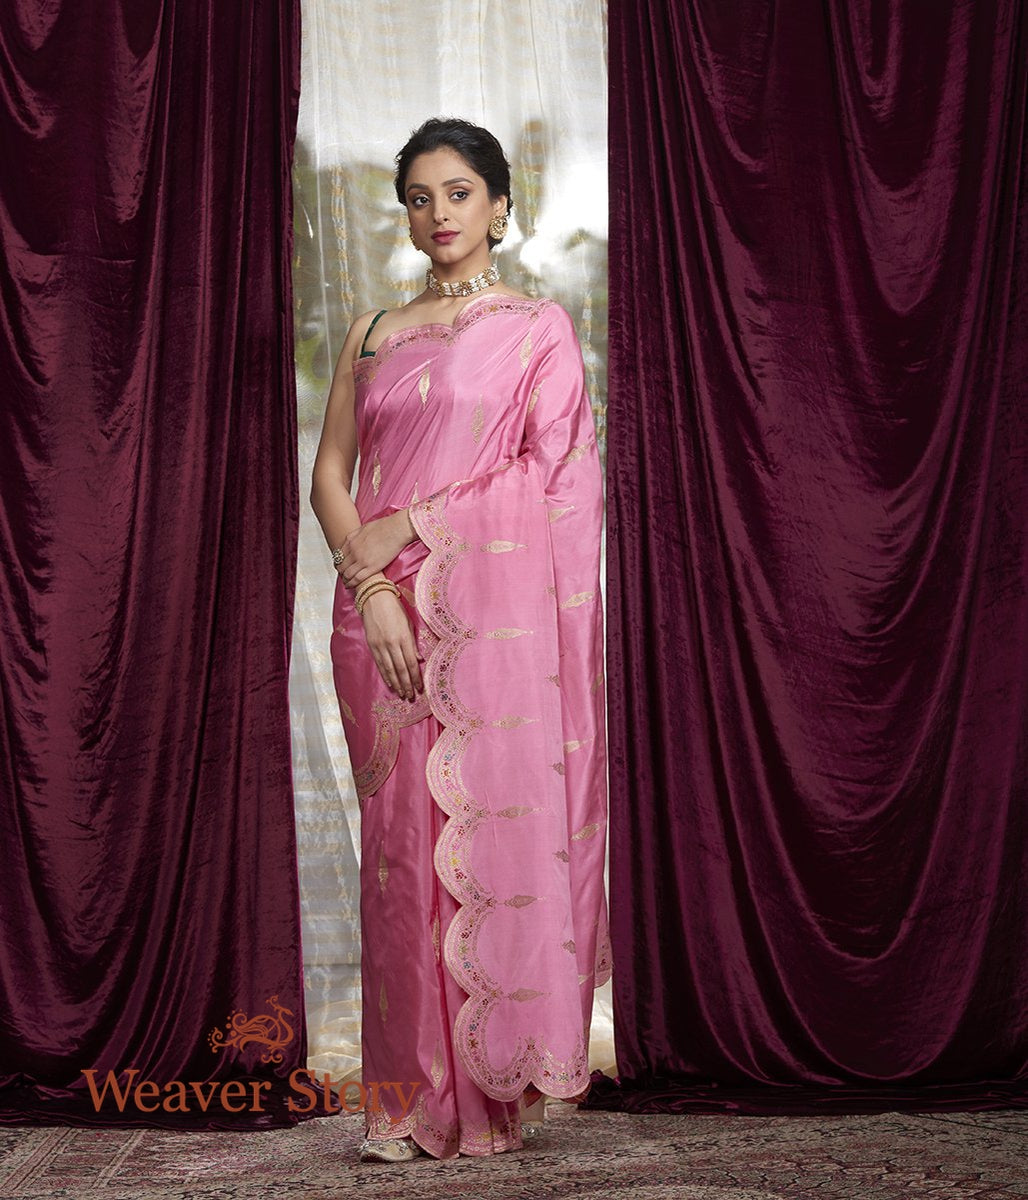 Handwoven Pink Meenakari Saree with Scalloped Borders